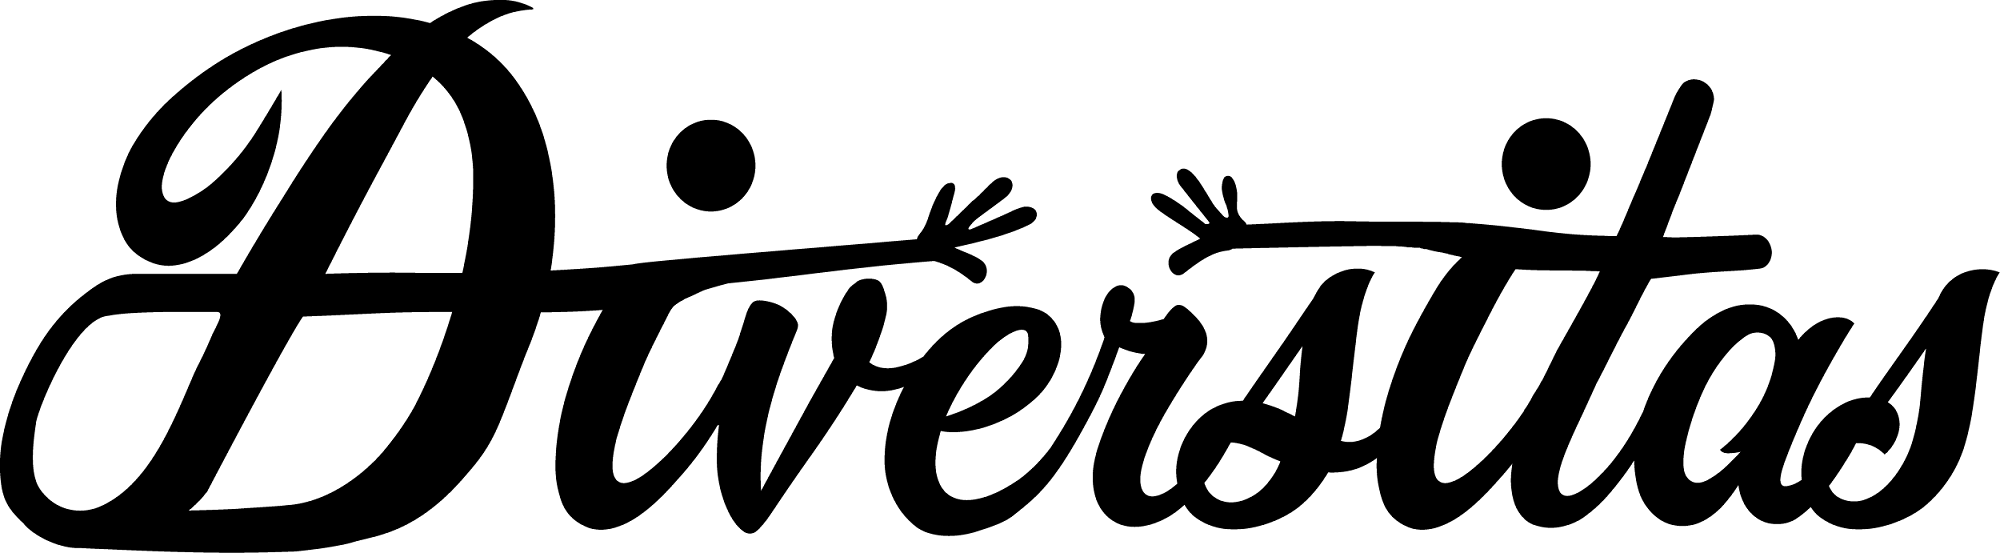 667-Peter-Diversitas-Logo-Final medium